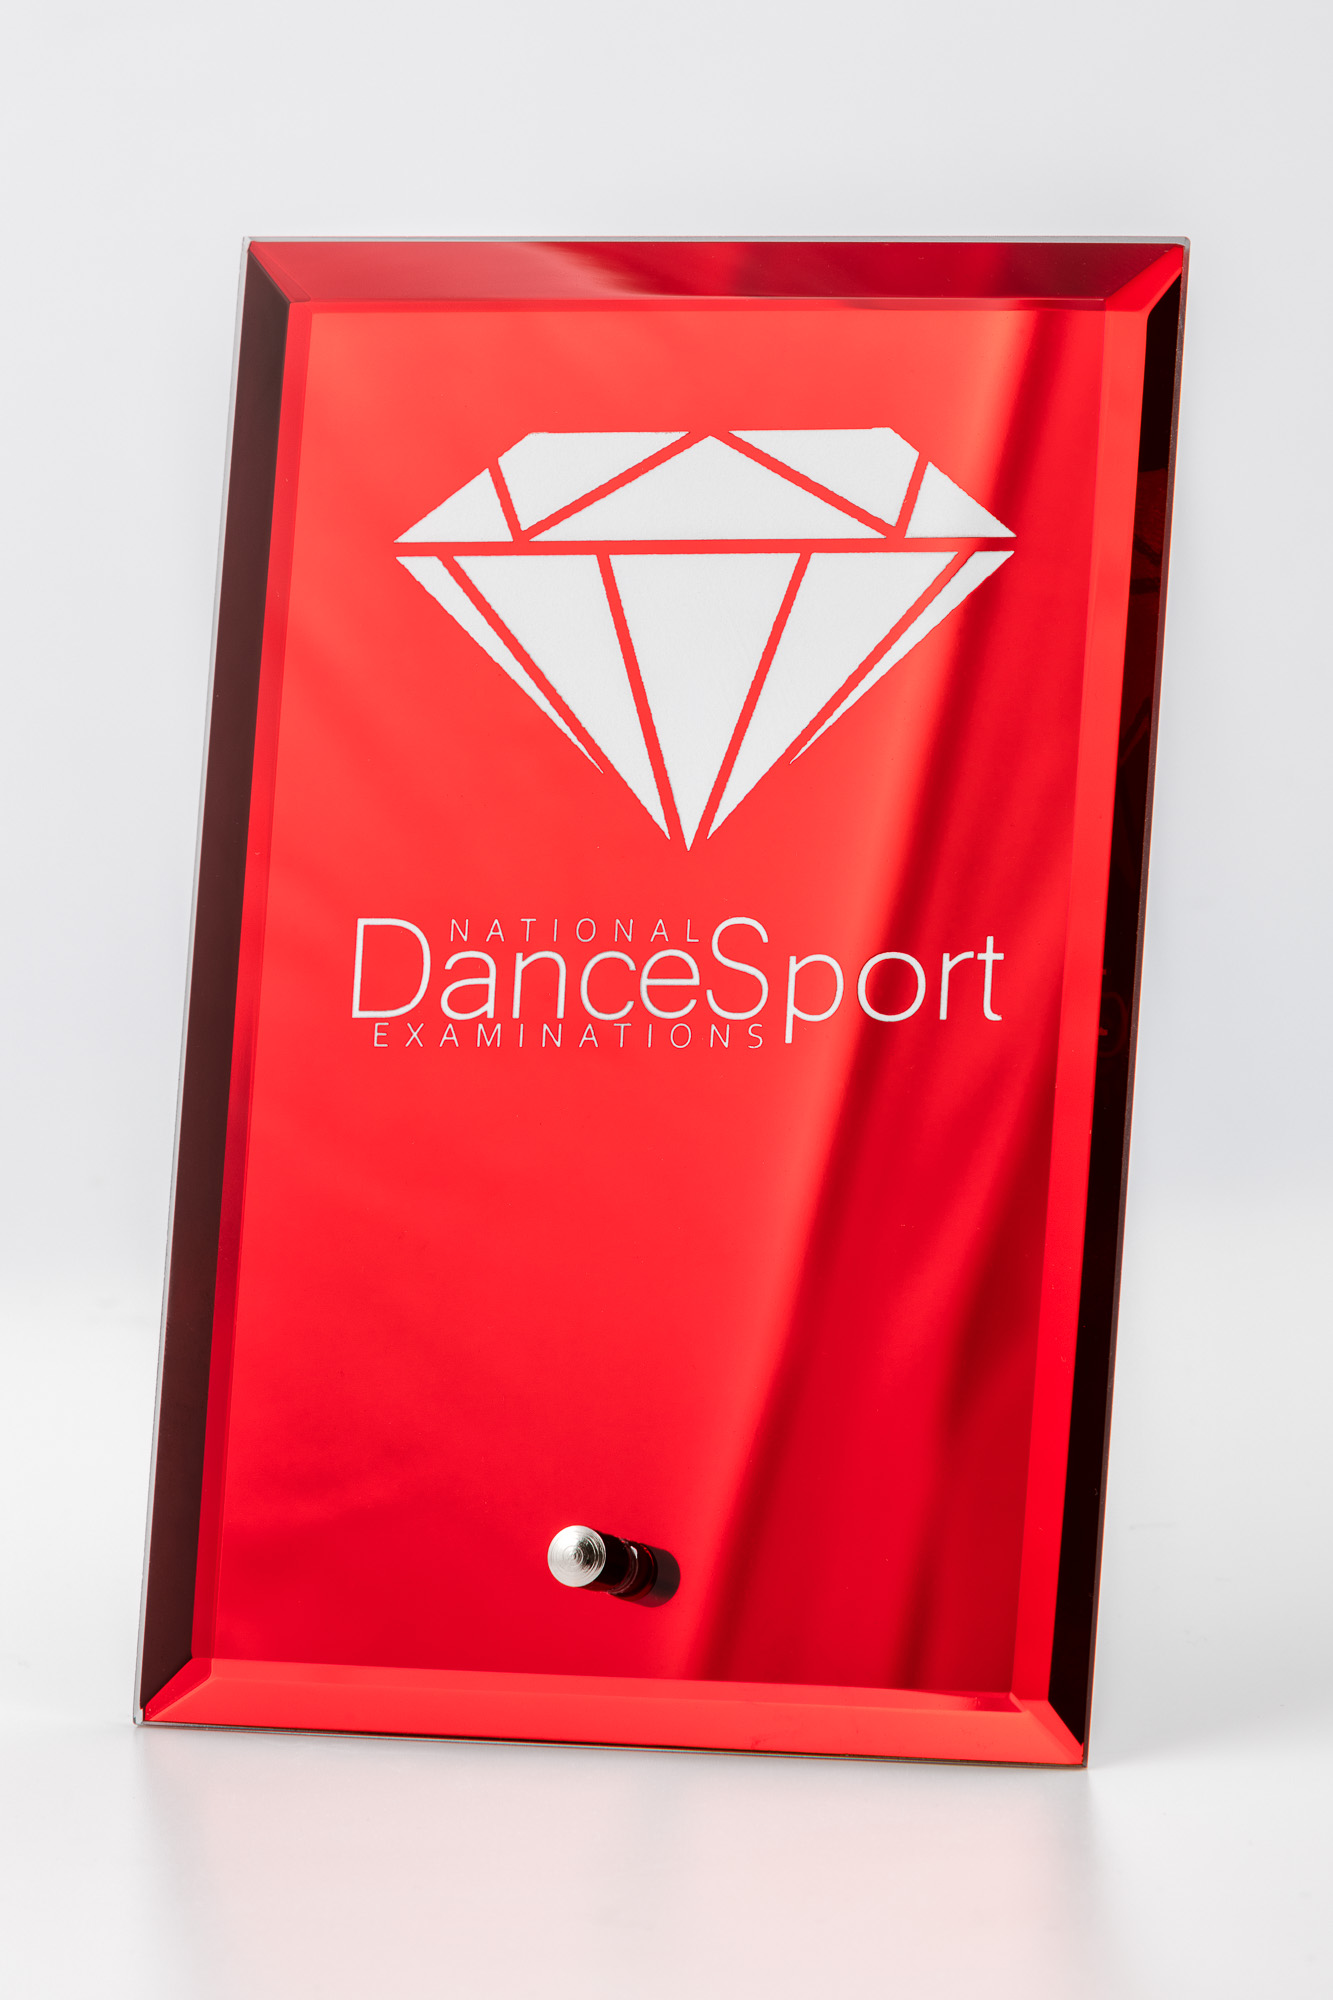 Product photography of dancing medal and plate - red plate